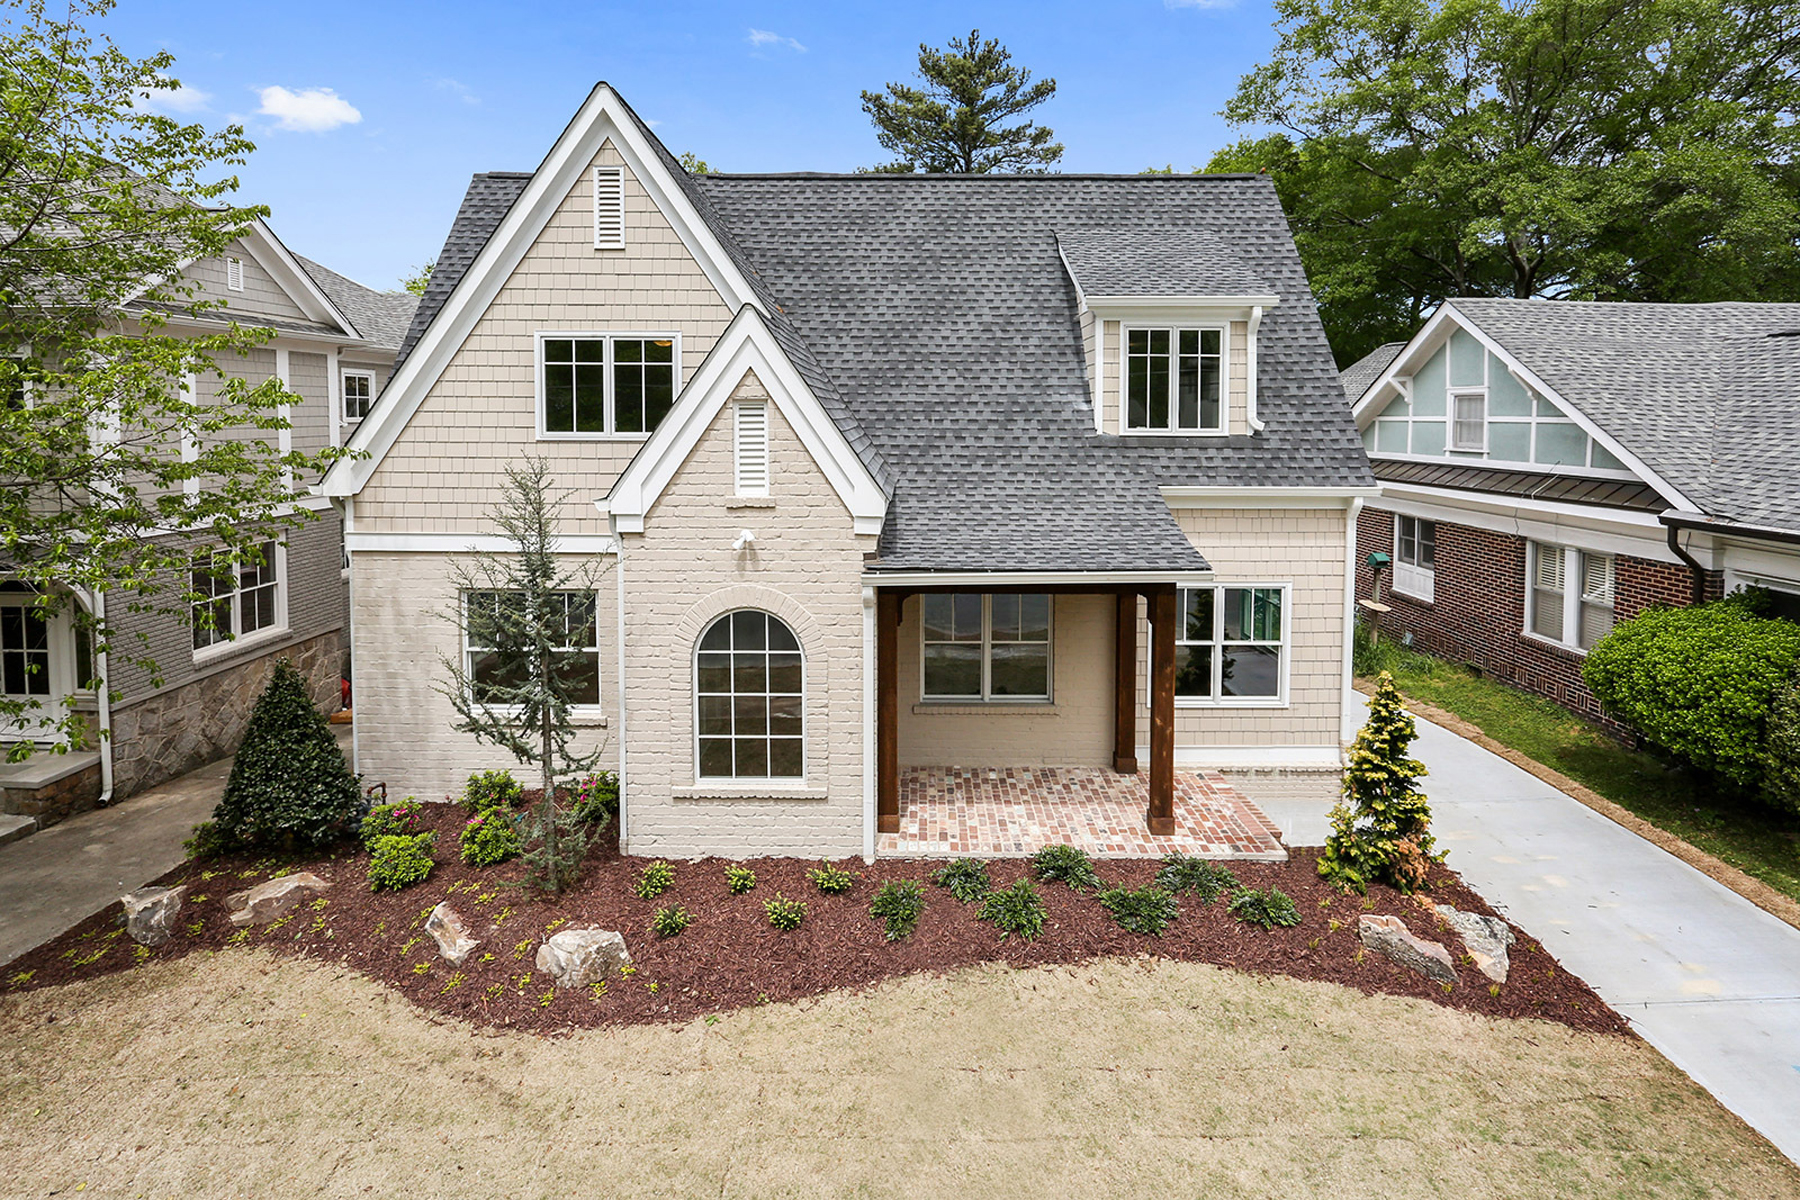 단독 가정 주택 용 매매 에 New Cottage Style Home On One Of Best Streets In Springlake 2108 Mckinley Road Springlake, Atlanta, 조지아, 30318 미국